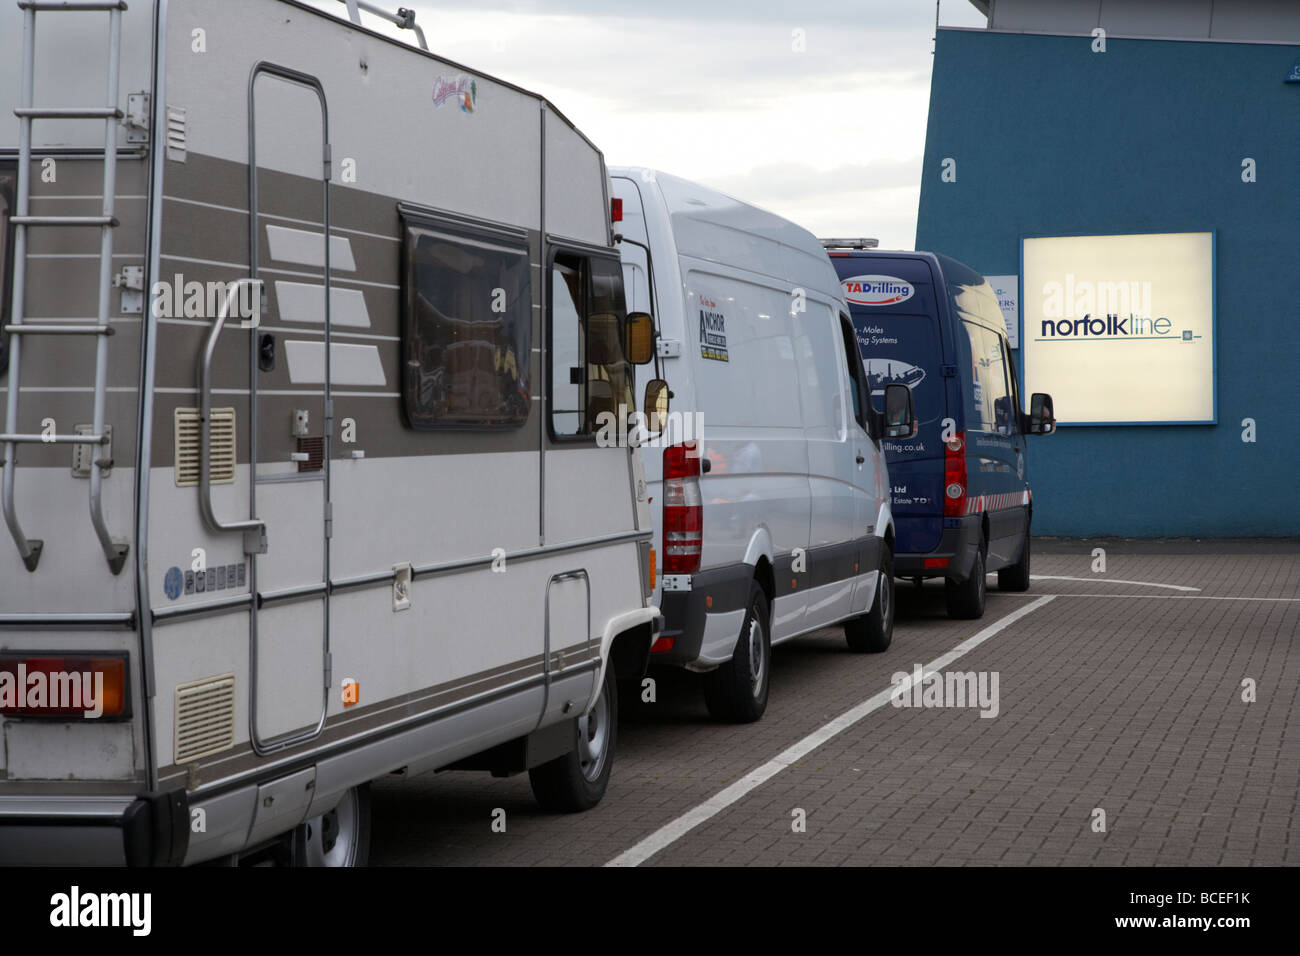 camper van and vans queuing in line to board the norfolkline belfast to liverpool ferry at the terminal in belfast - Stock Image